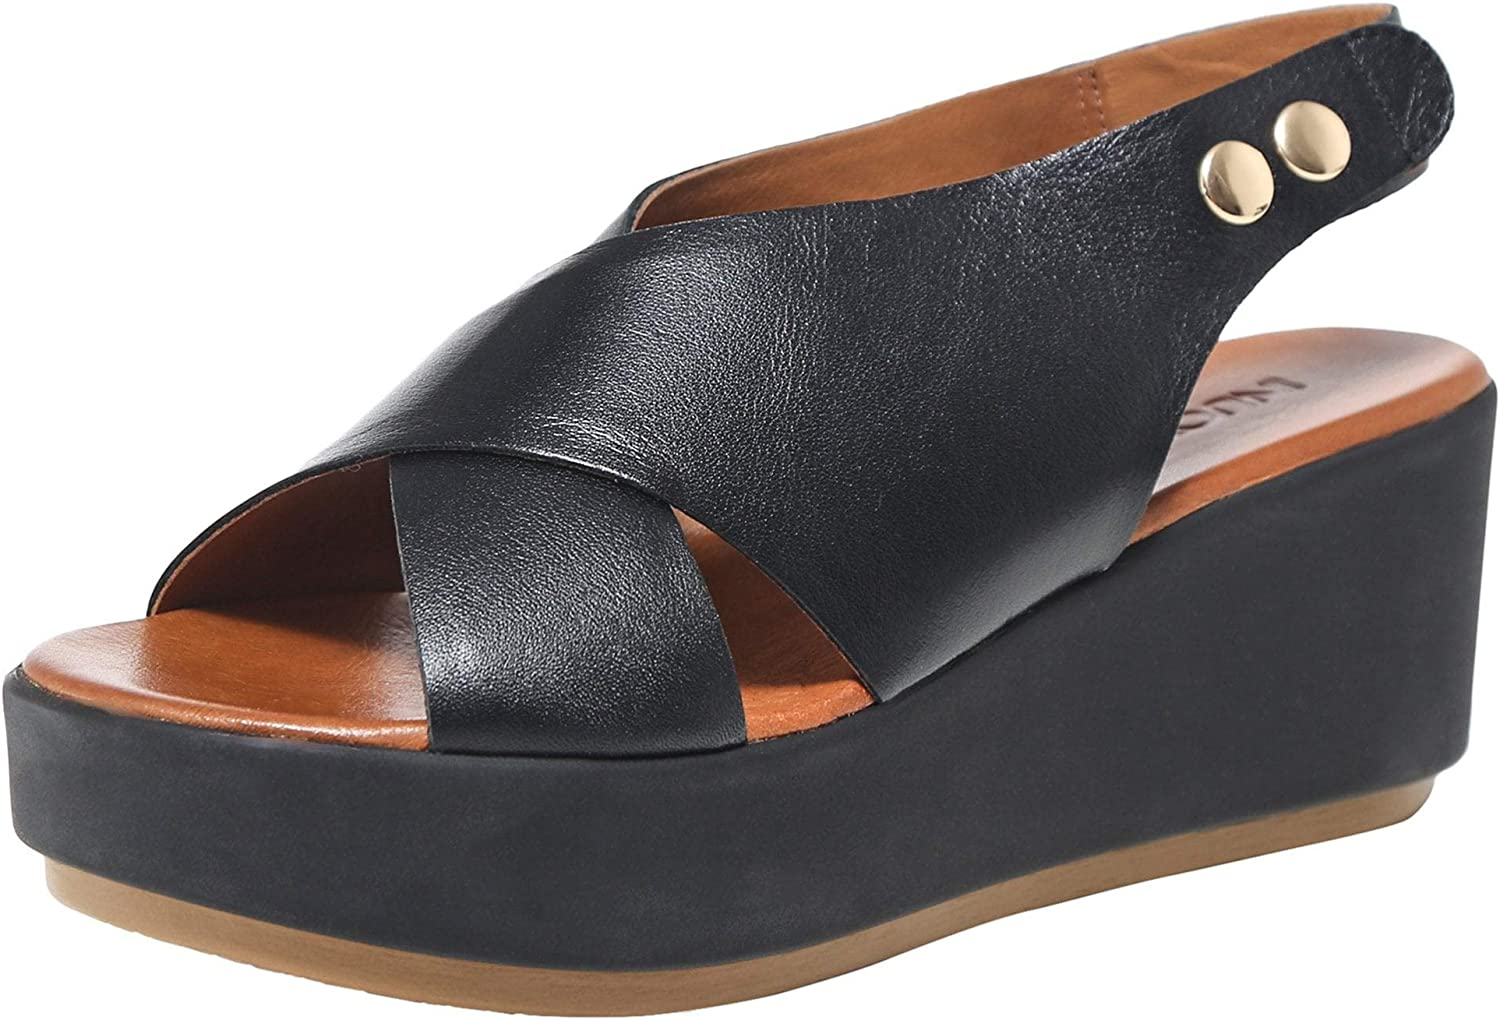 Inuovo Women's Leather Slingback Sandals Black